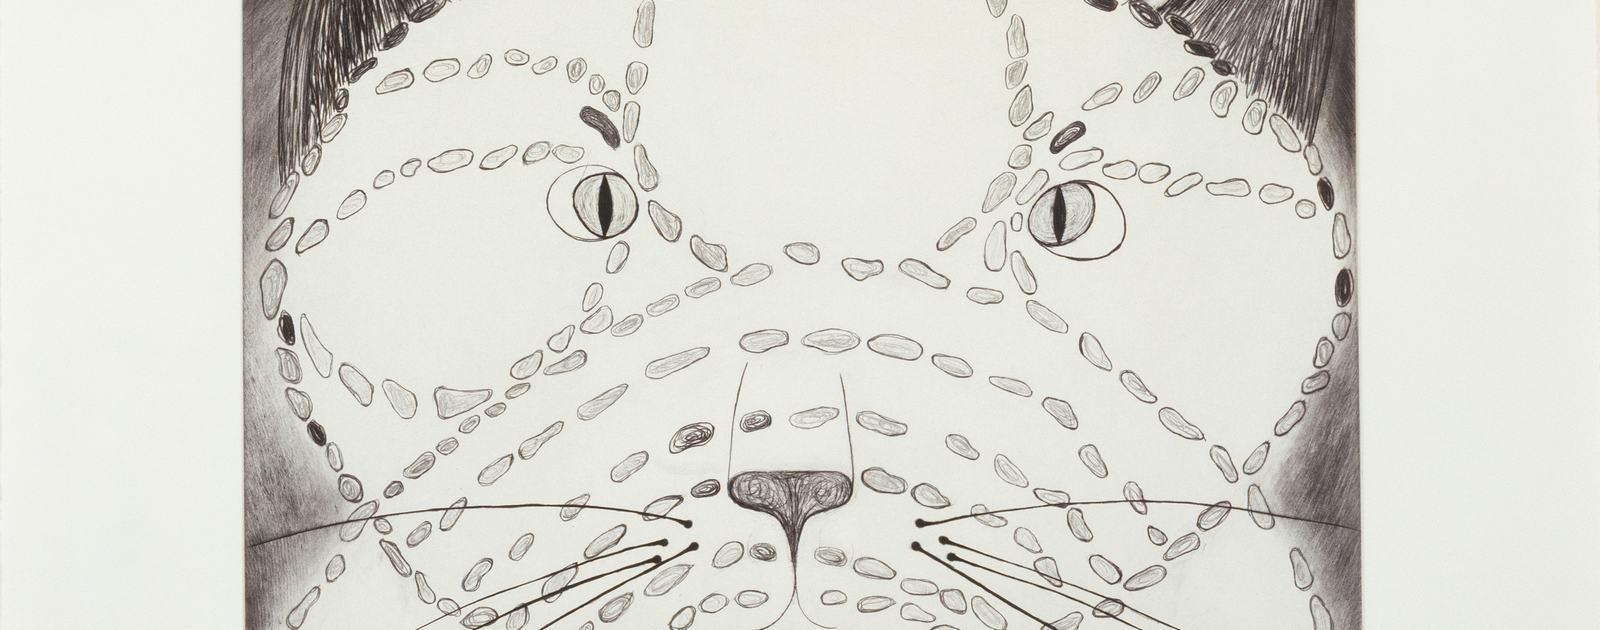 Louise Bourgeois THE ANGRY CAT, 1999 LOUISE BOURGEOIS PRINTS: AUTOBIOGRAPHICAL SERIES AND SET OF 11 DRYPOINTS